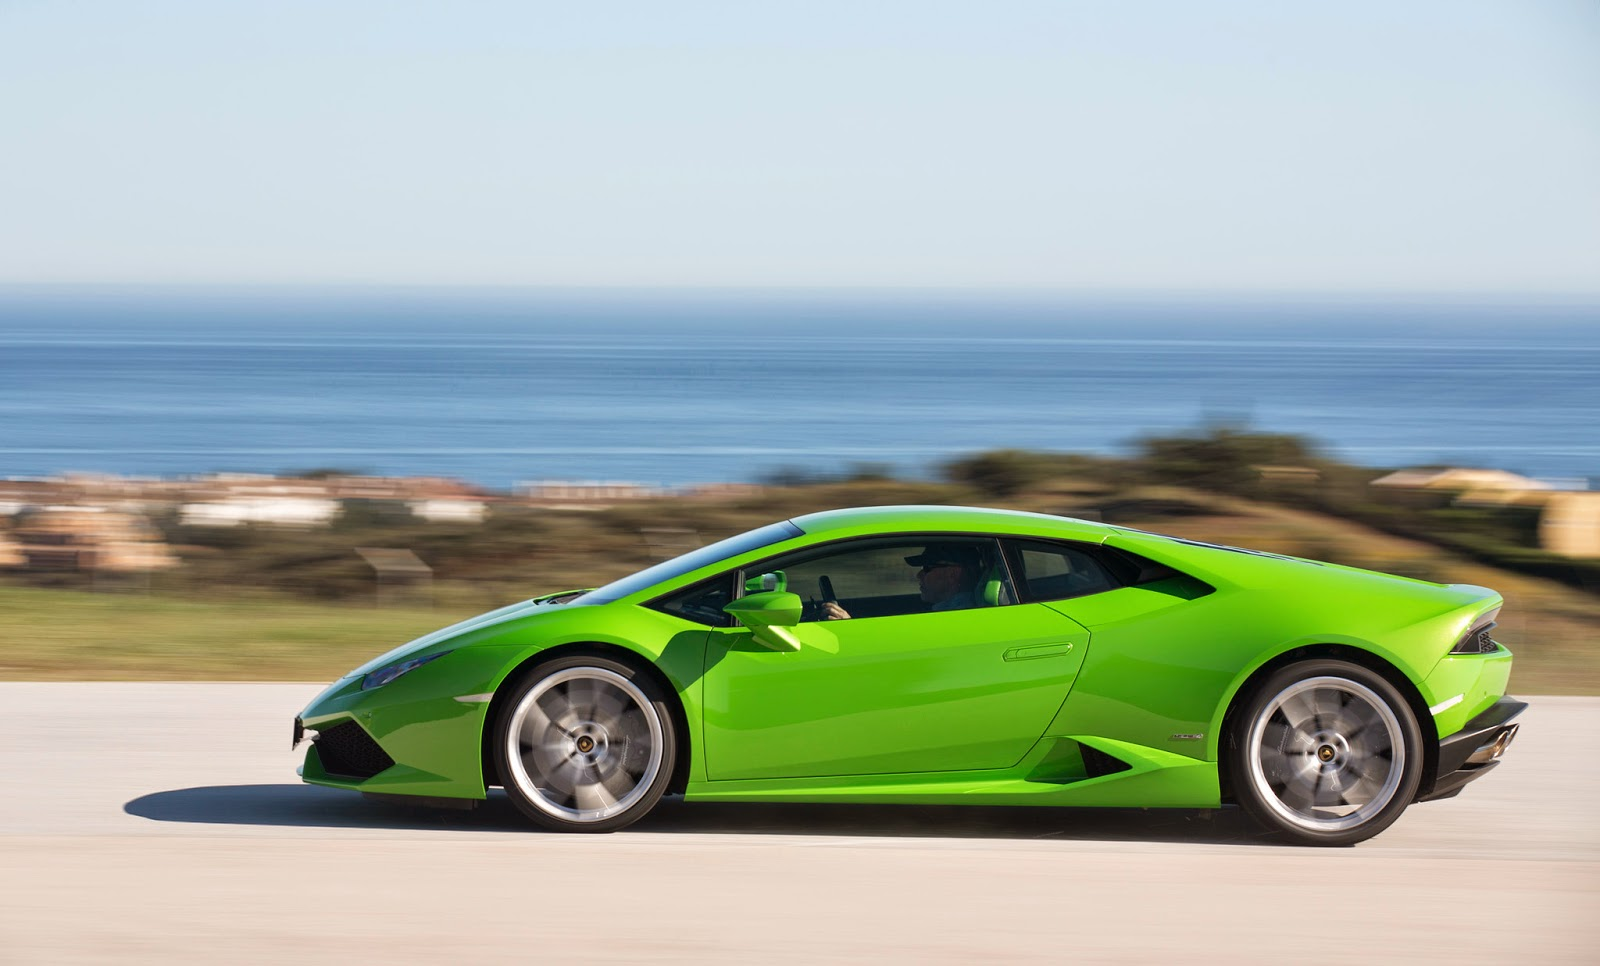 lamborghini huracan price and specs lamborghini huracan lp610 4 spyder price specs review pics. Black Bedroom Furniture Sets. Home Design Ideas